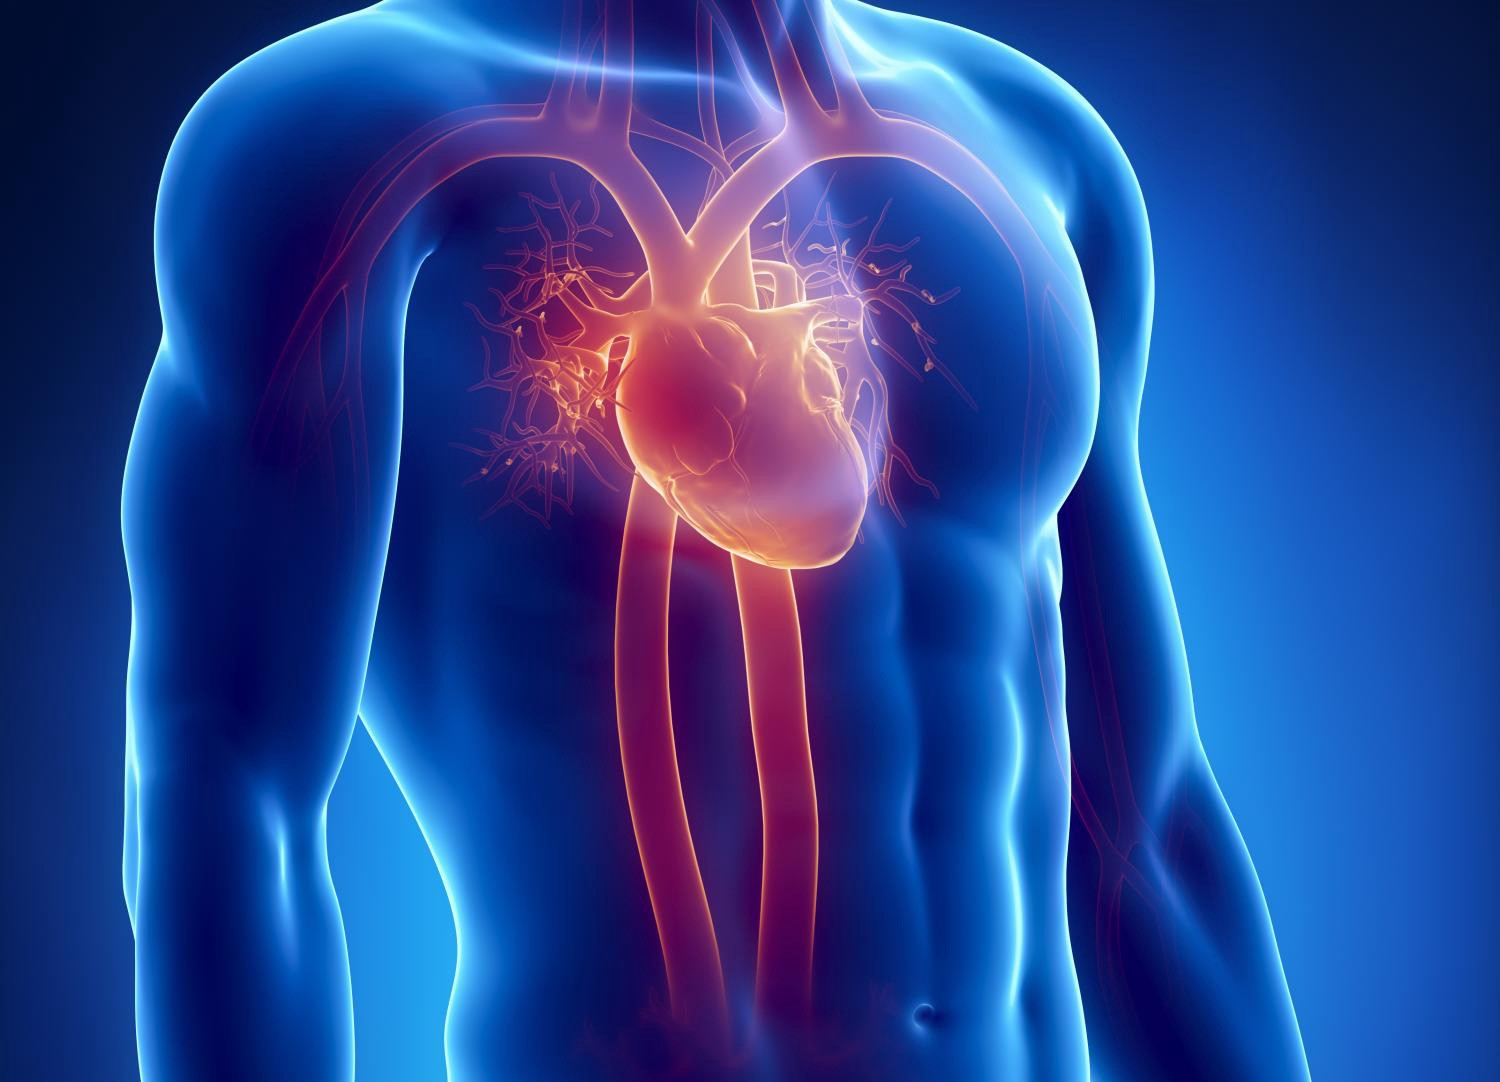 Electronic-cigs may Damage the heart Crucially : Finds study